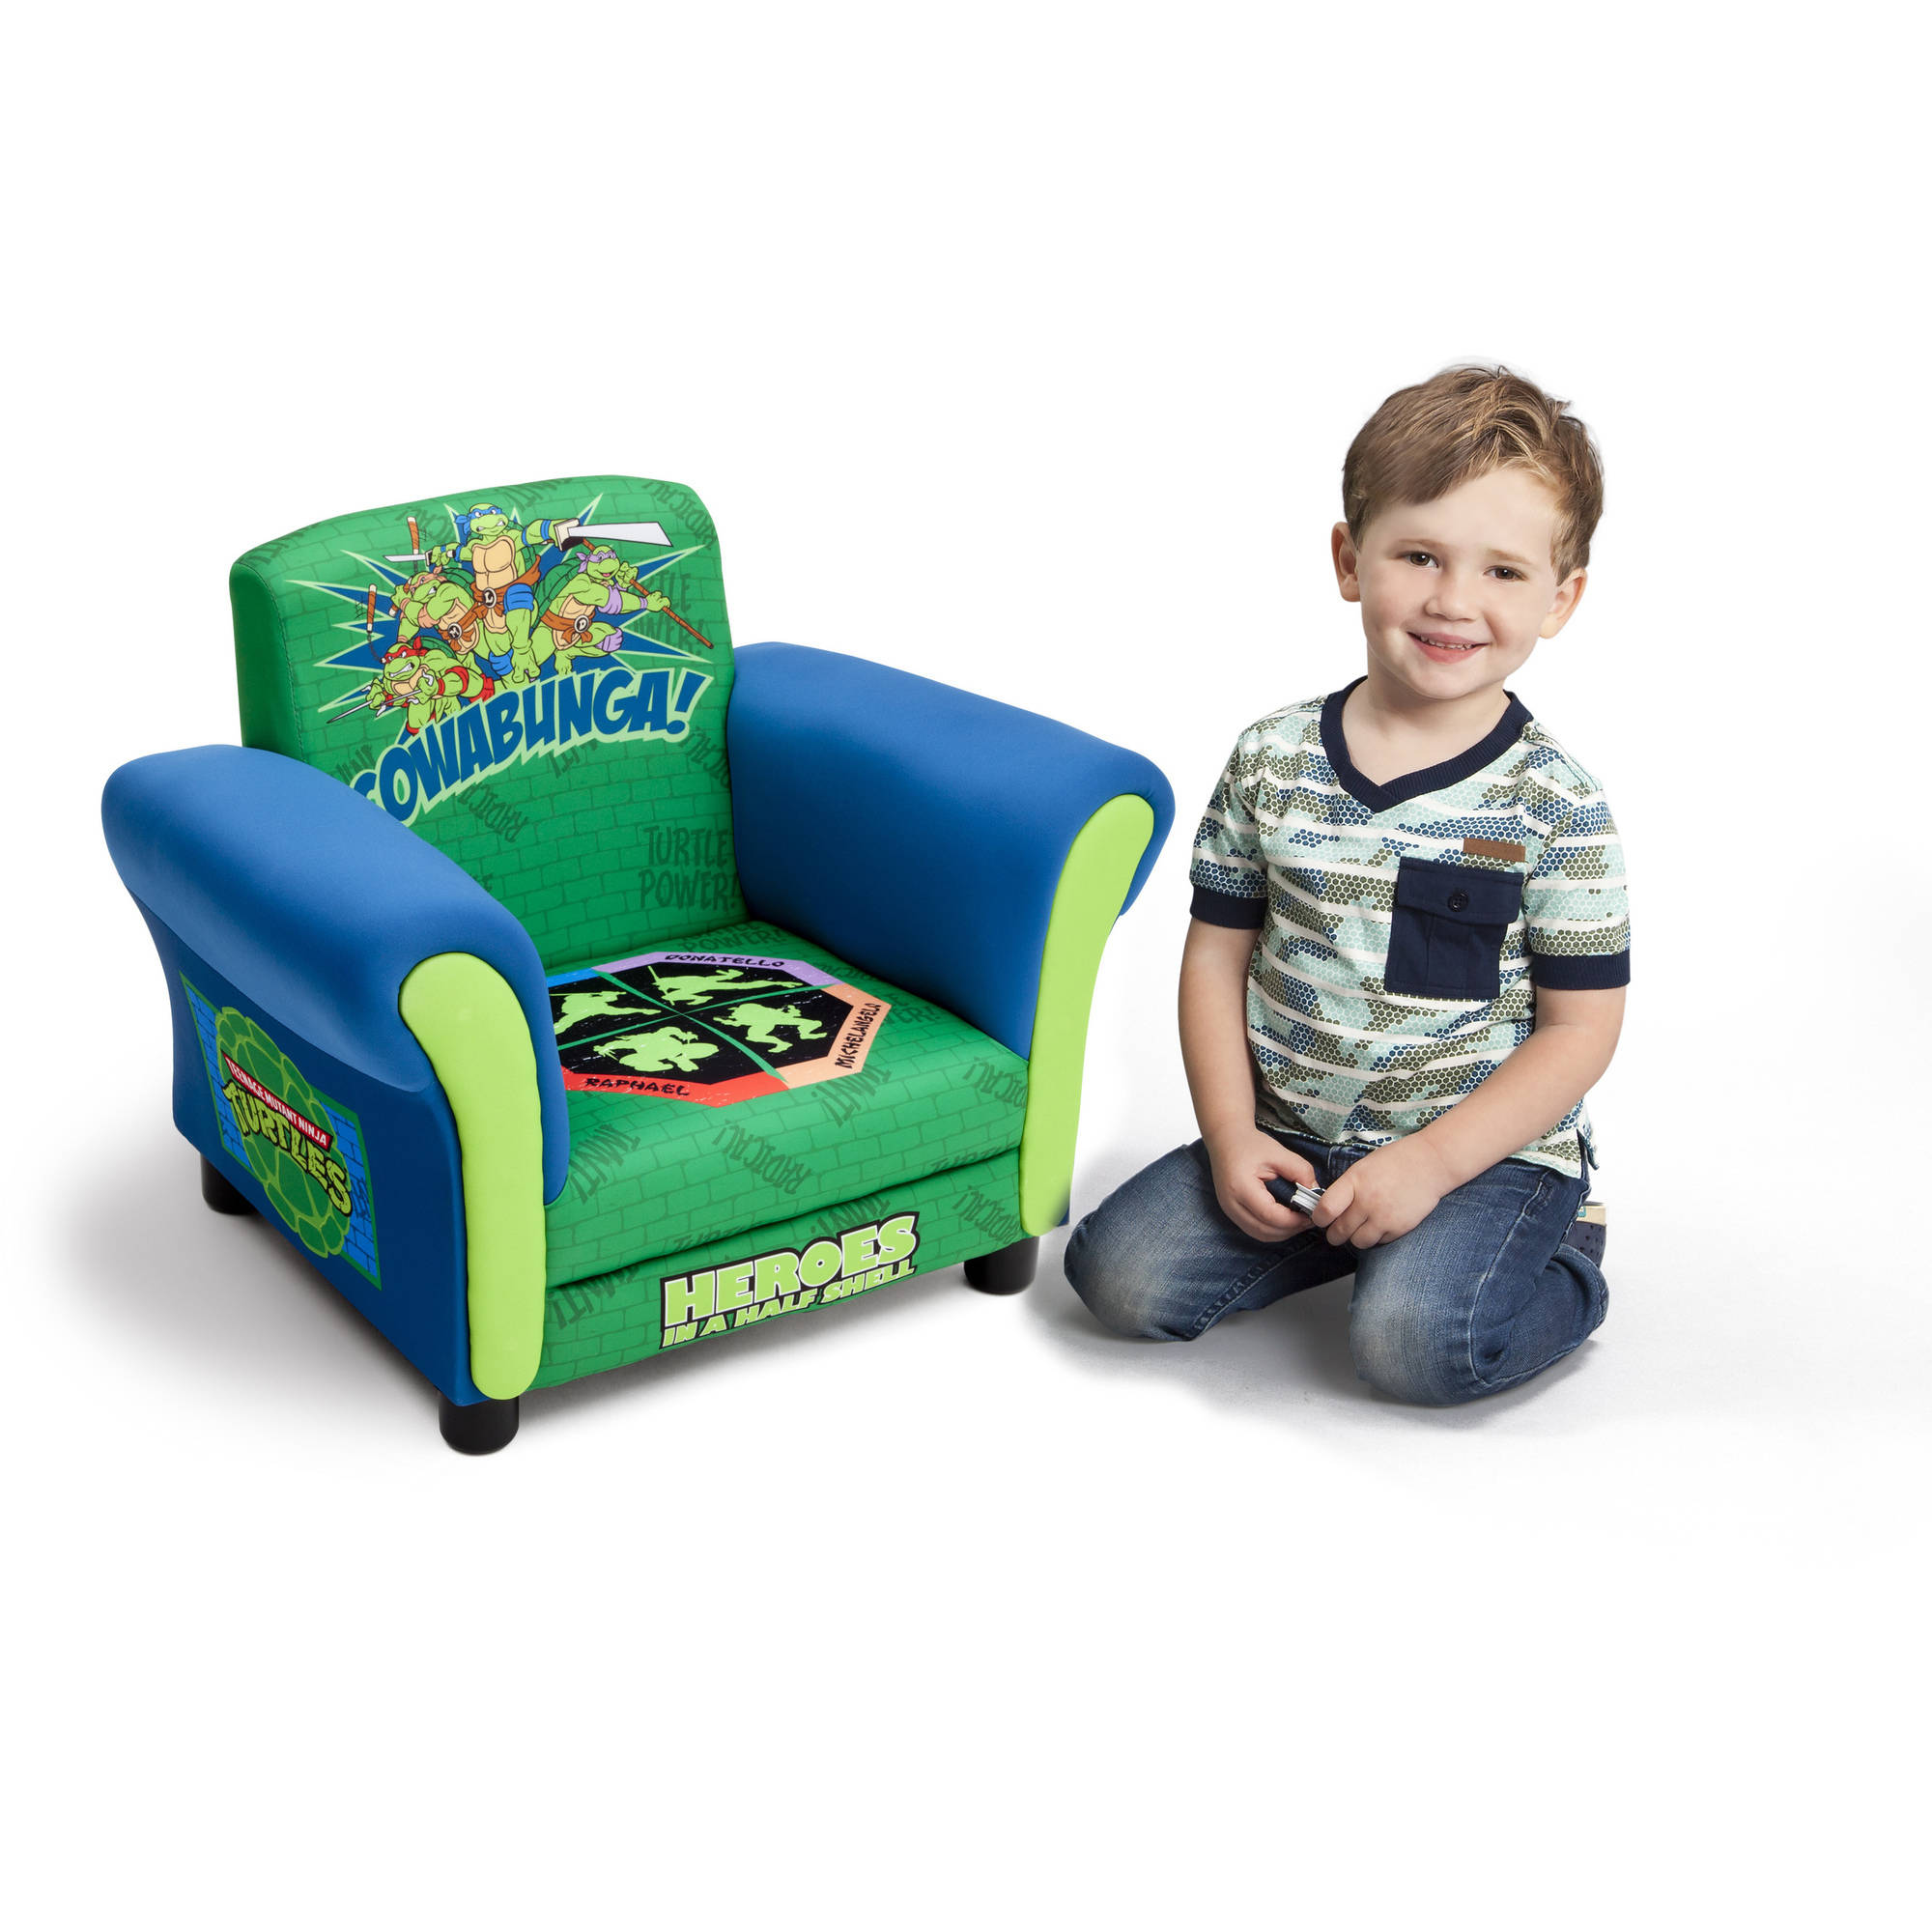 Delta Children's Products Nickelodeon Ninja Turtle Upholstered Chair